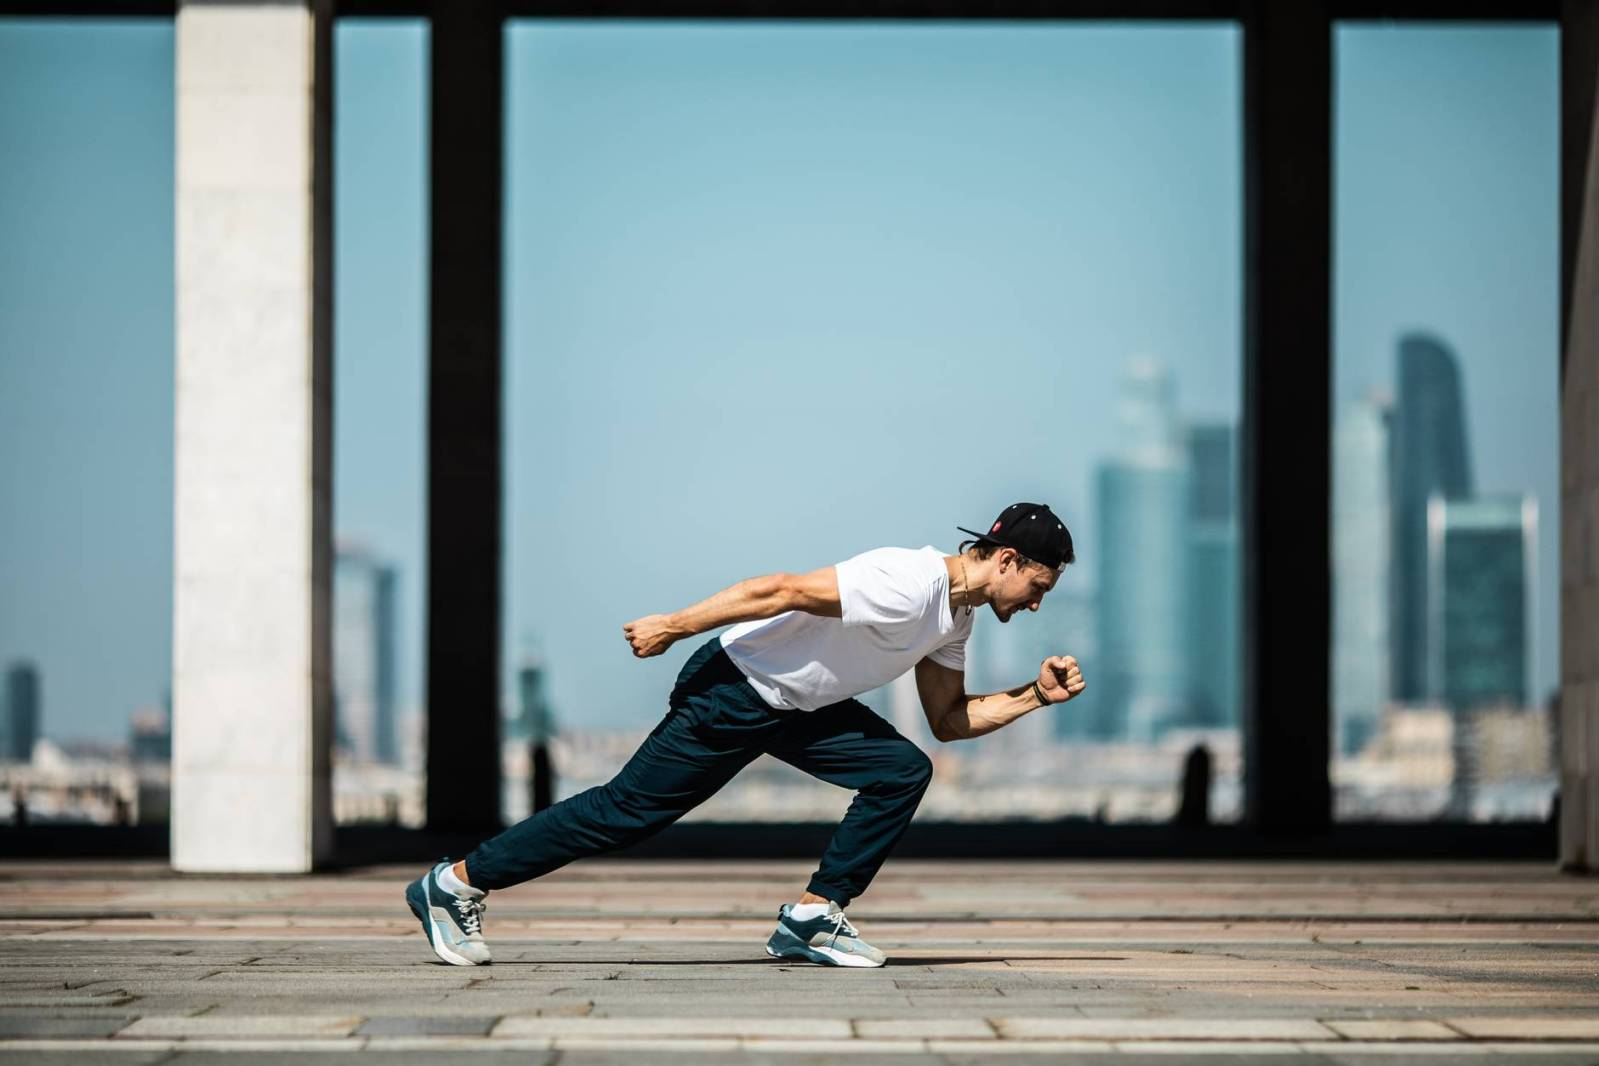 man in white t shirt and black pants in a running position